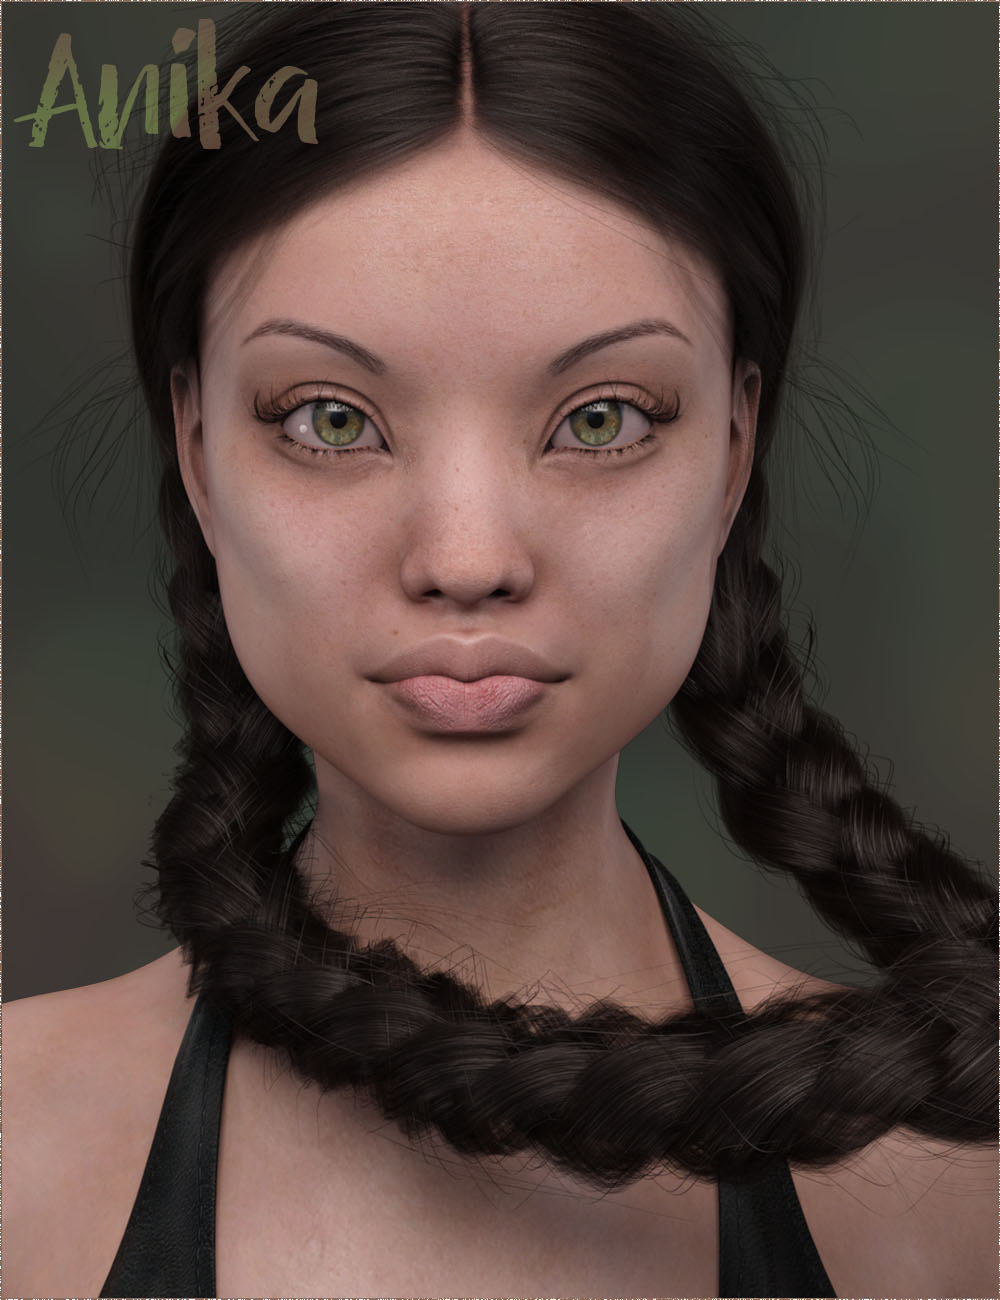 TDT-Anika for Genesis 8 Female